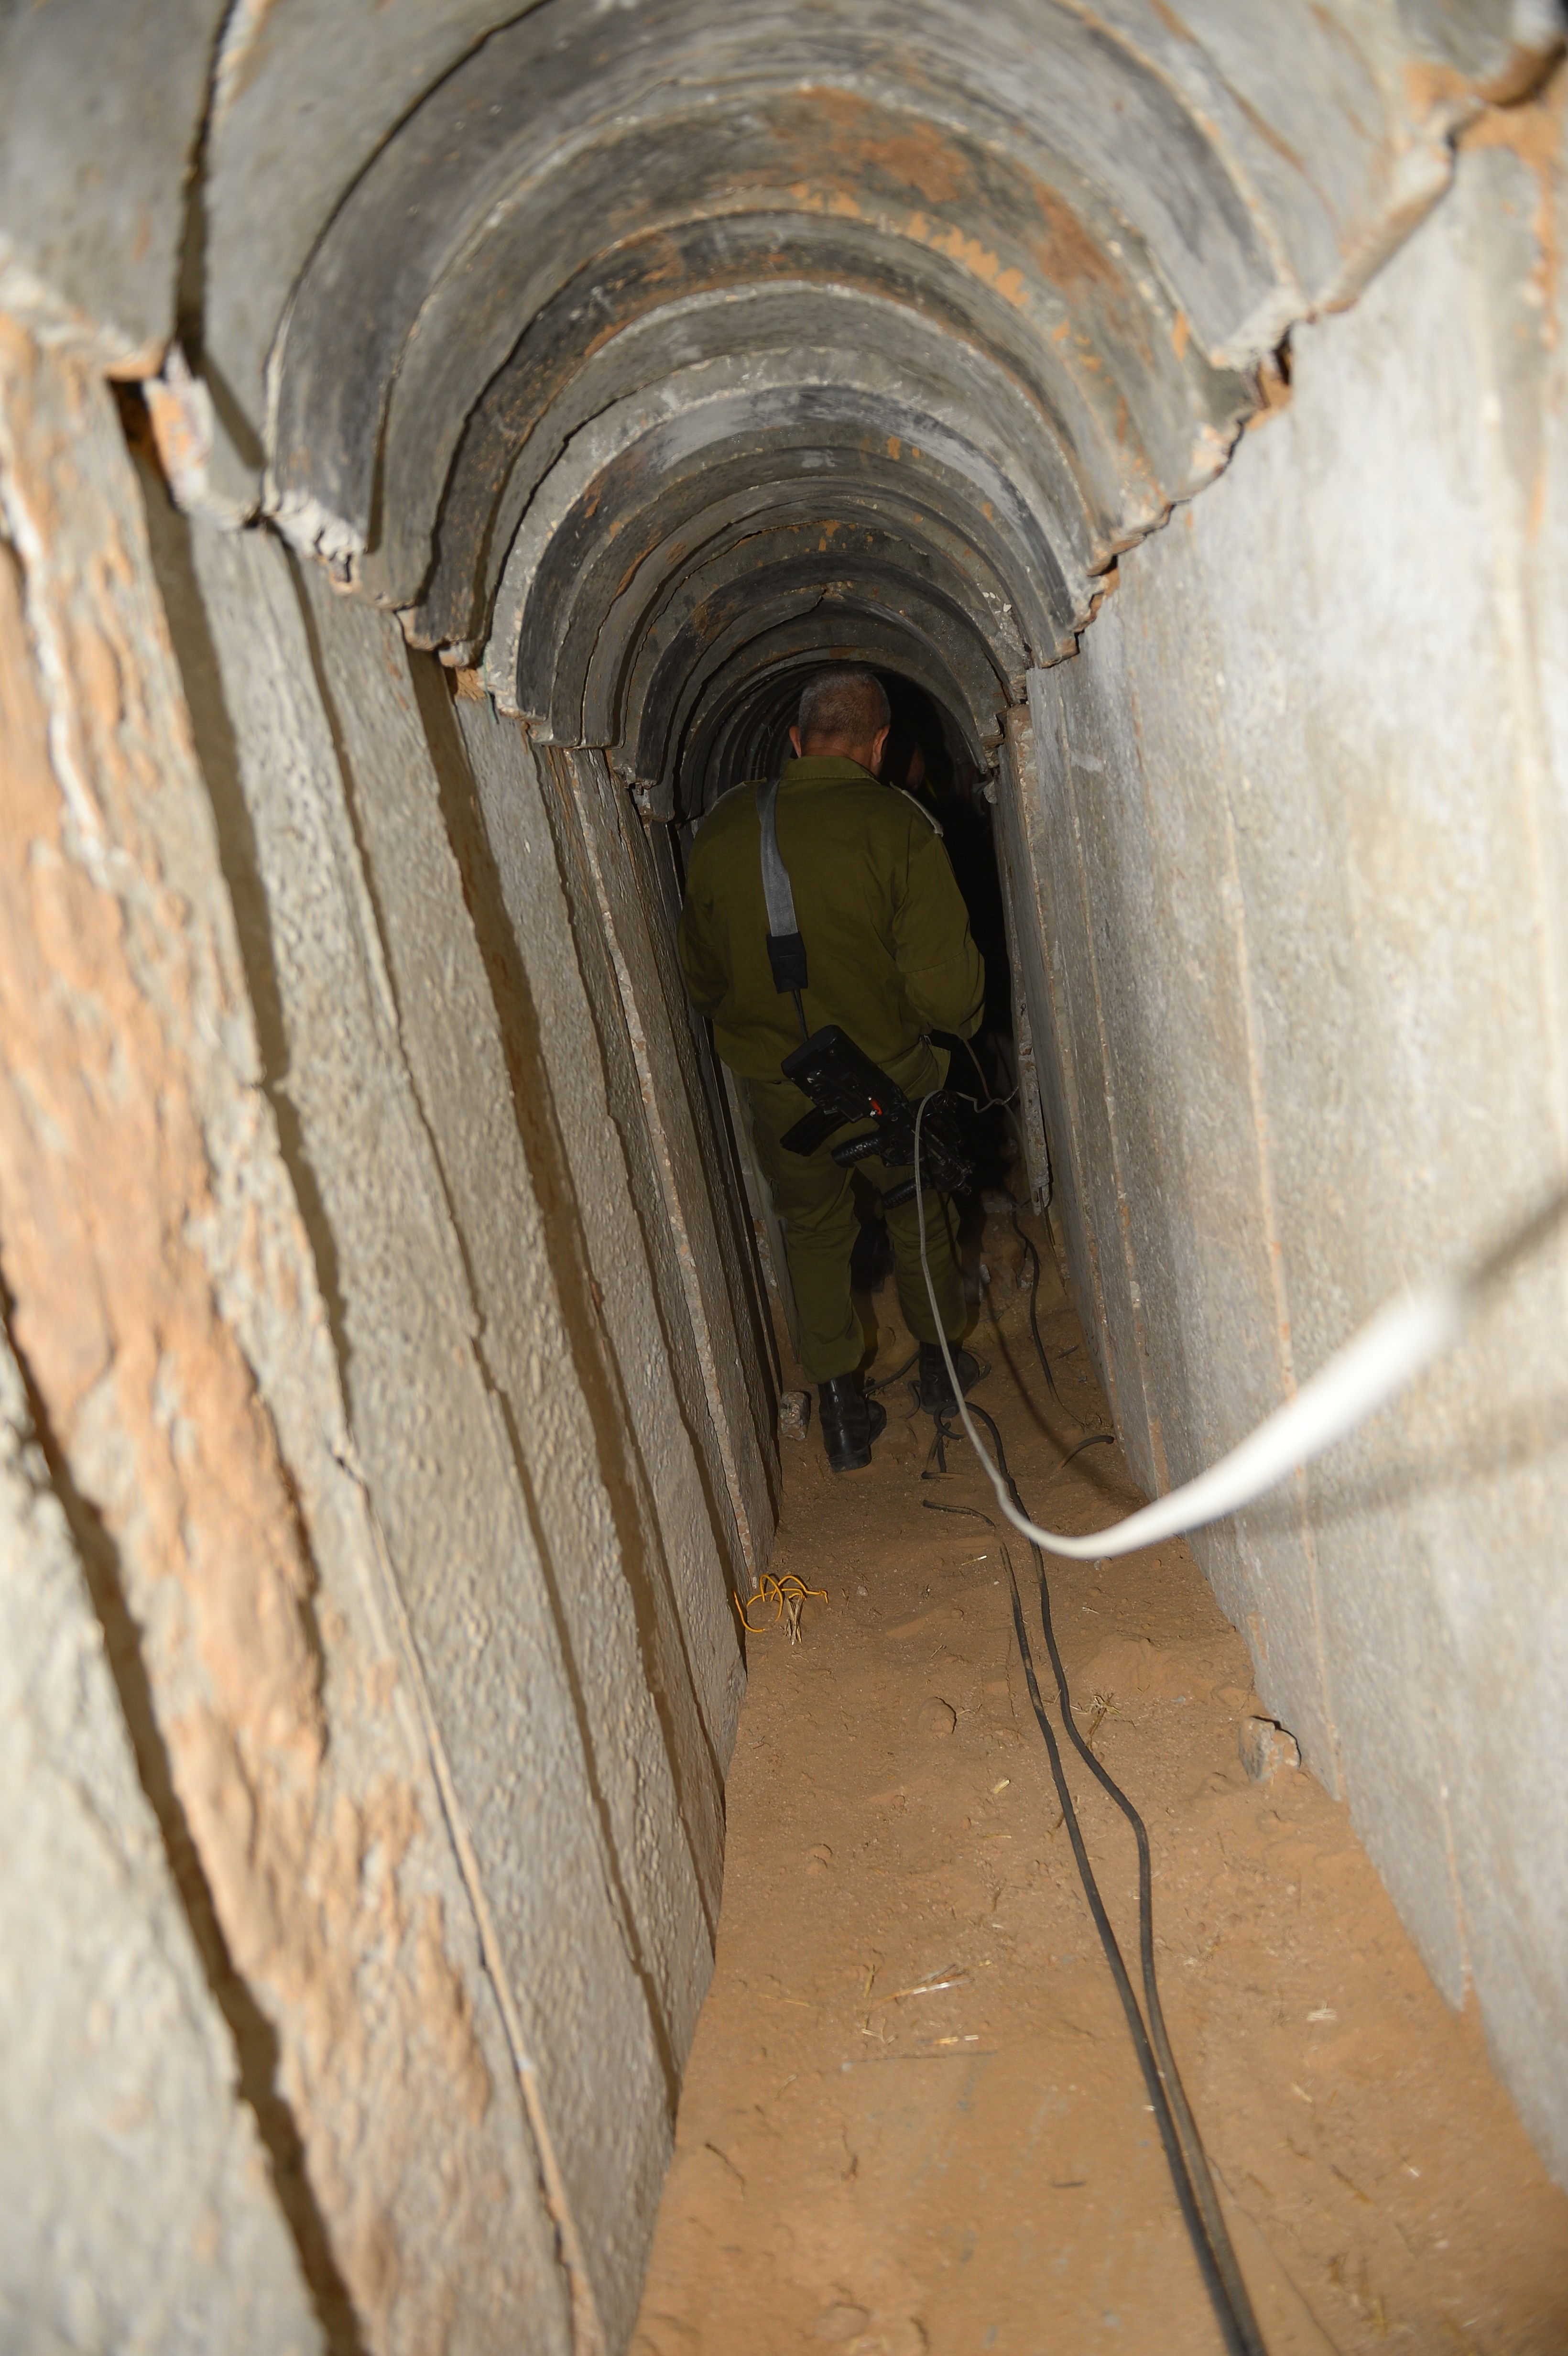 Palestinians pay dearly for Hamas 'resistance tunnels'